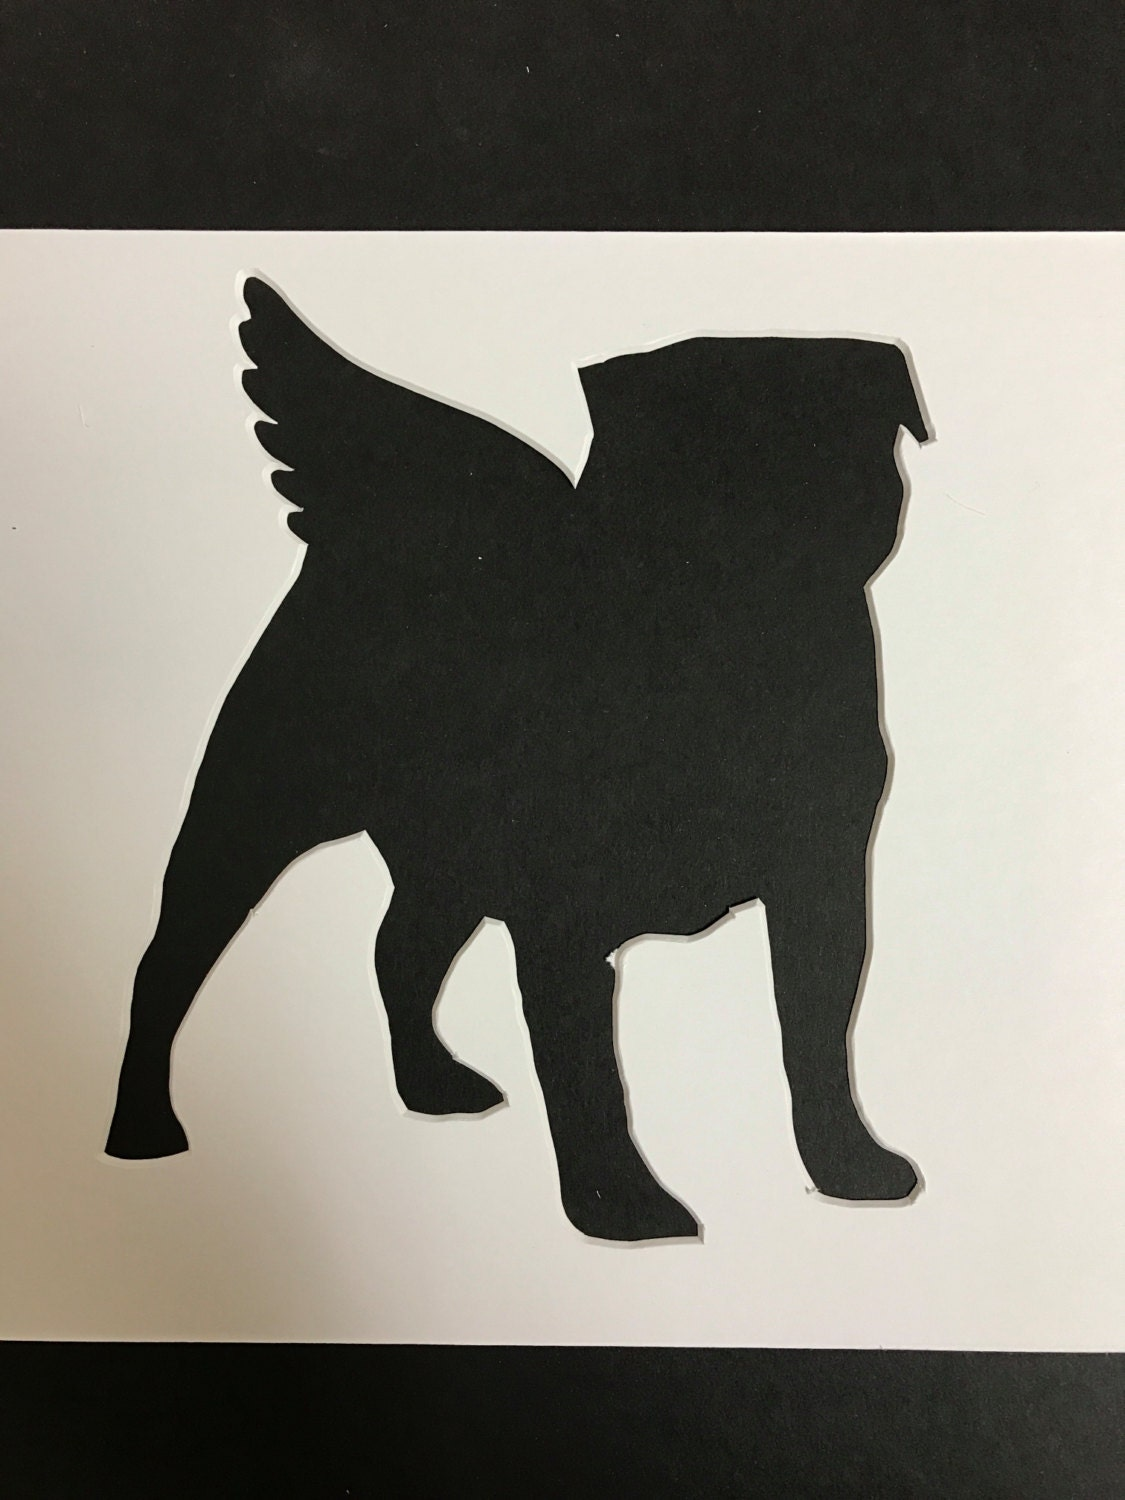 8x10 Animal Stencils With Angel Wings